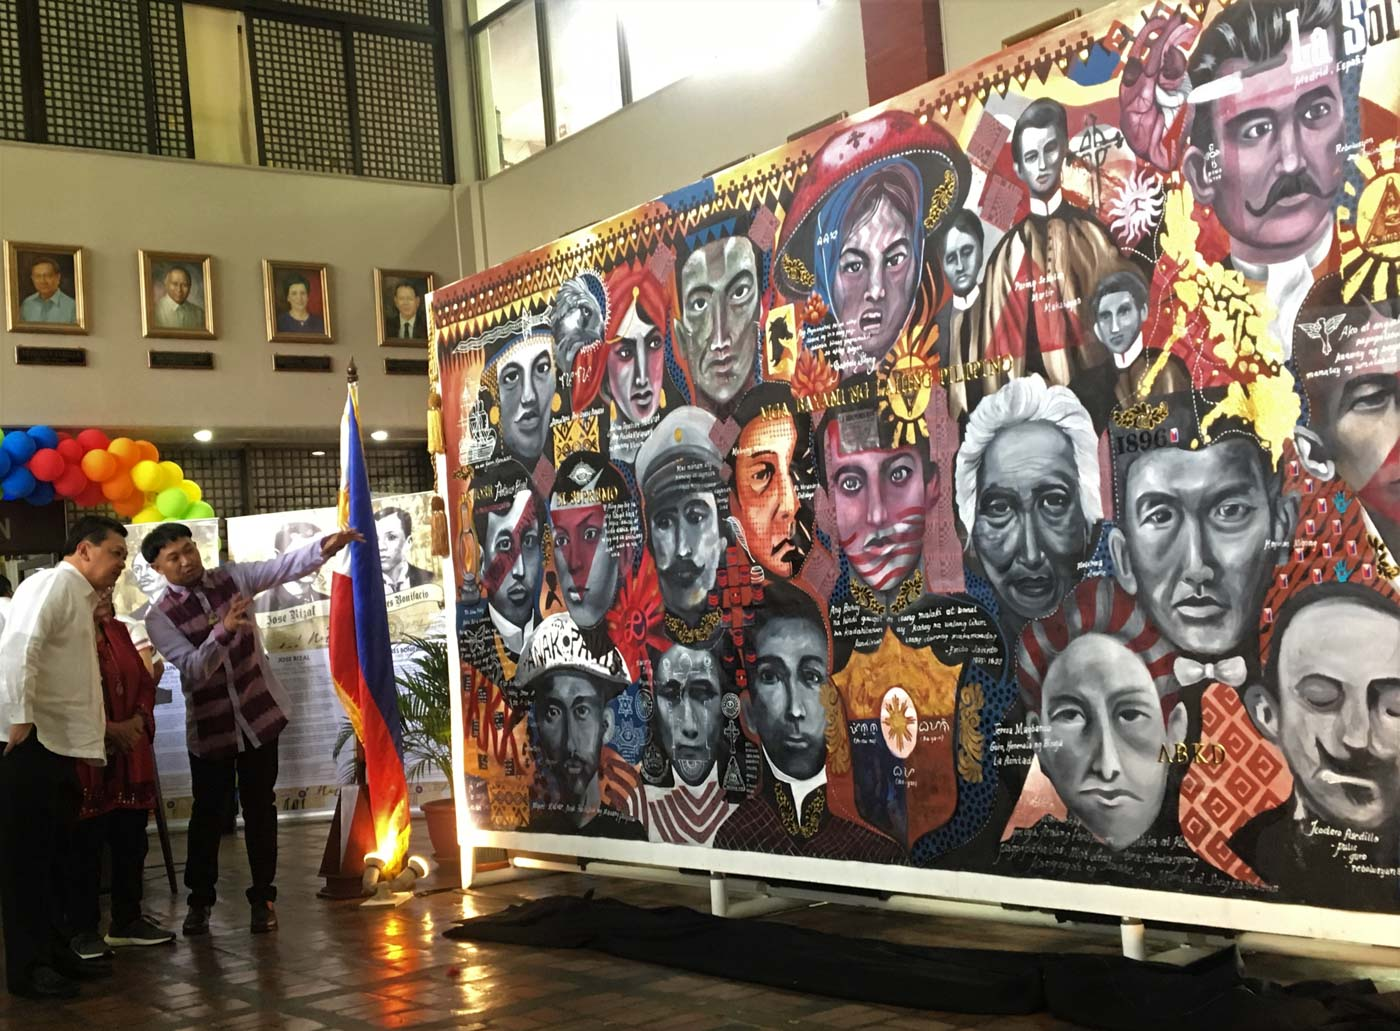 HEROISM. The Department of Education hails Filipino heroism during the unveiling of a mural exhibit at the Bulwagan ng Katarungan in Pasig City on Monday, June 24. All photos courtesy of Department of Education